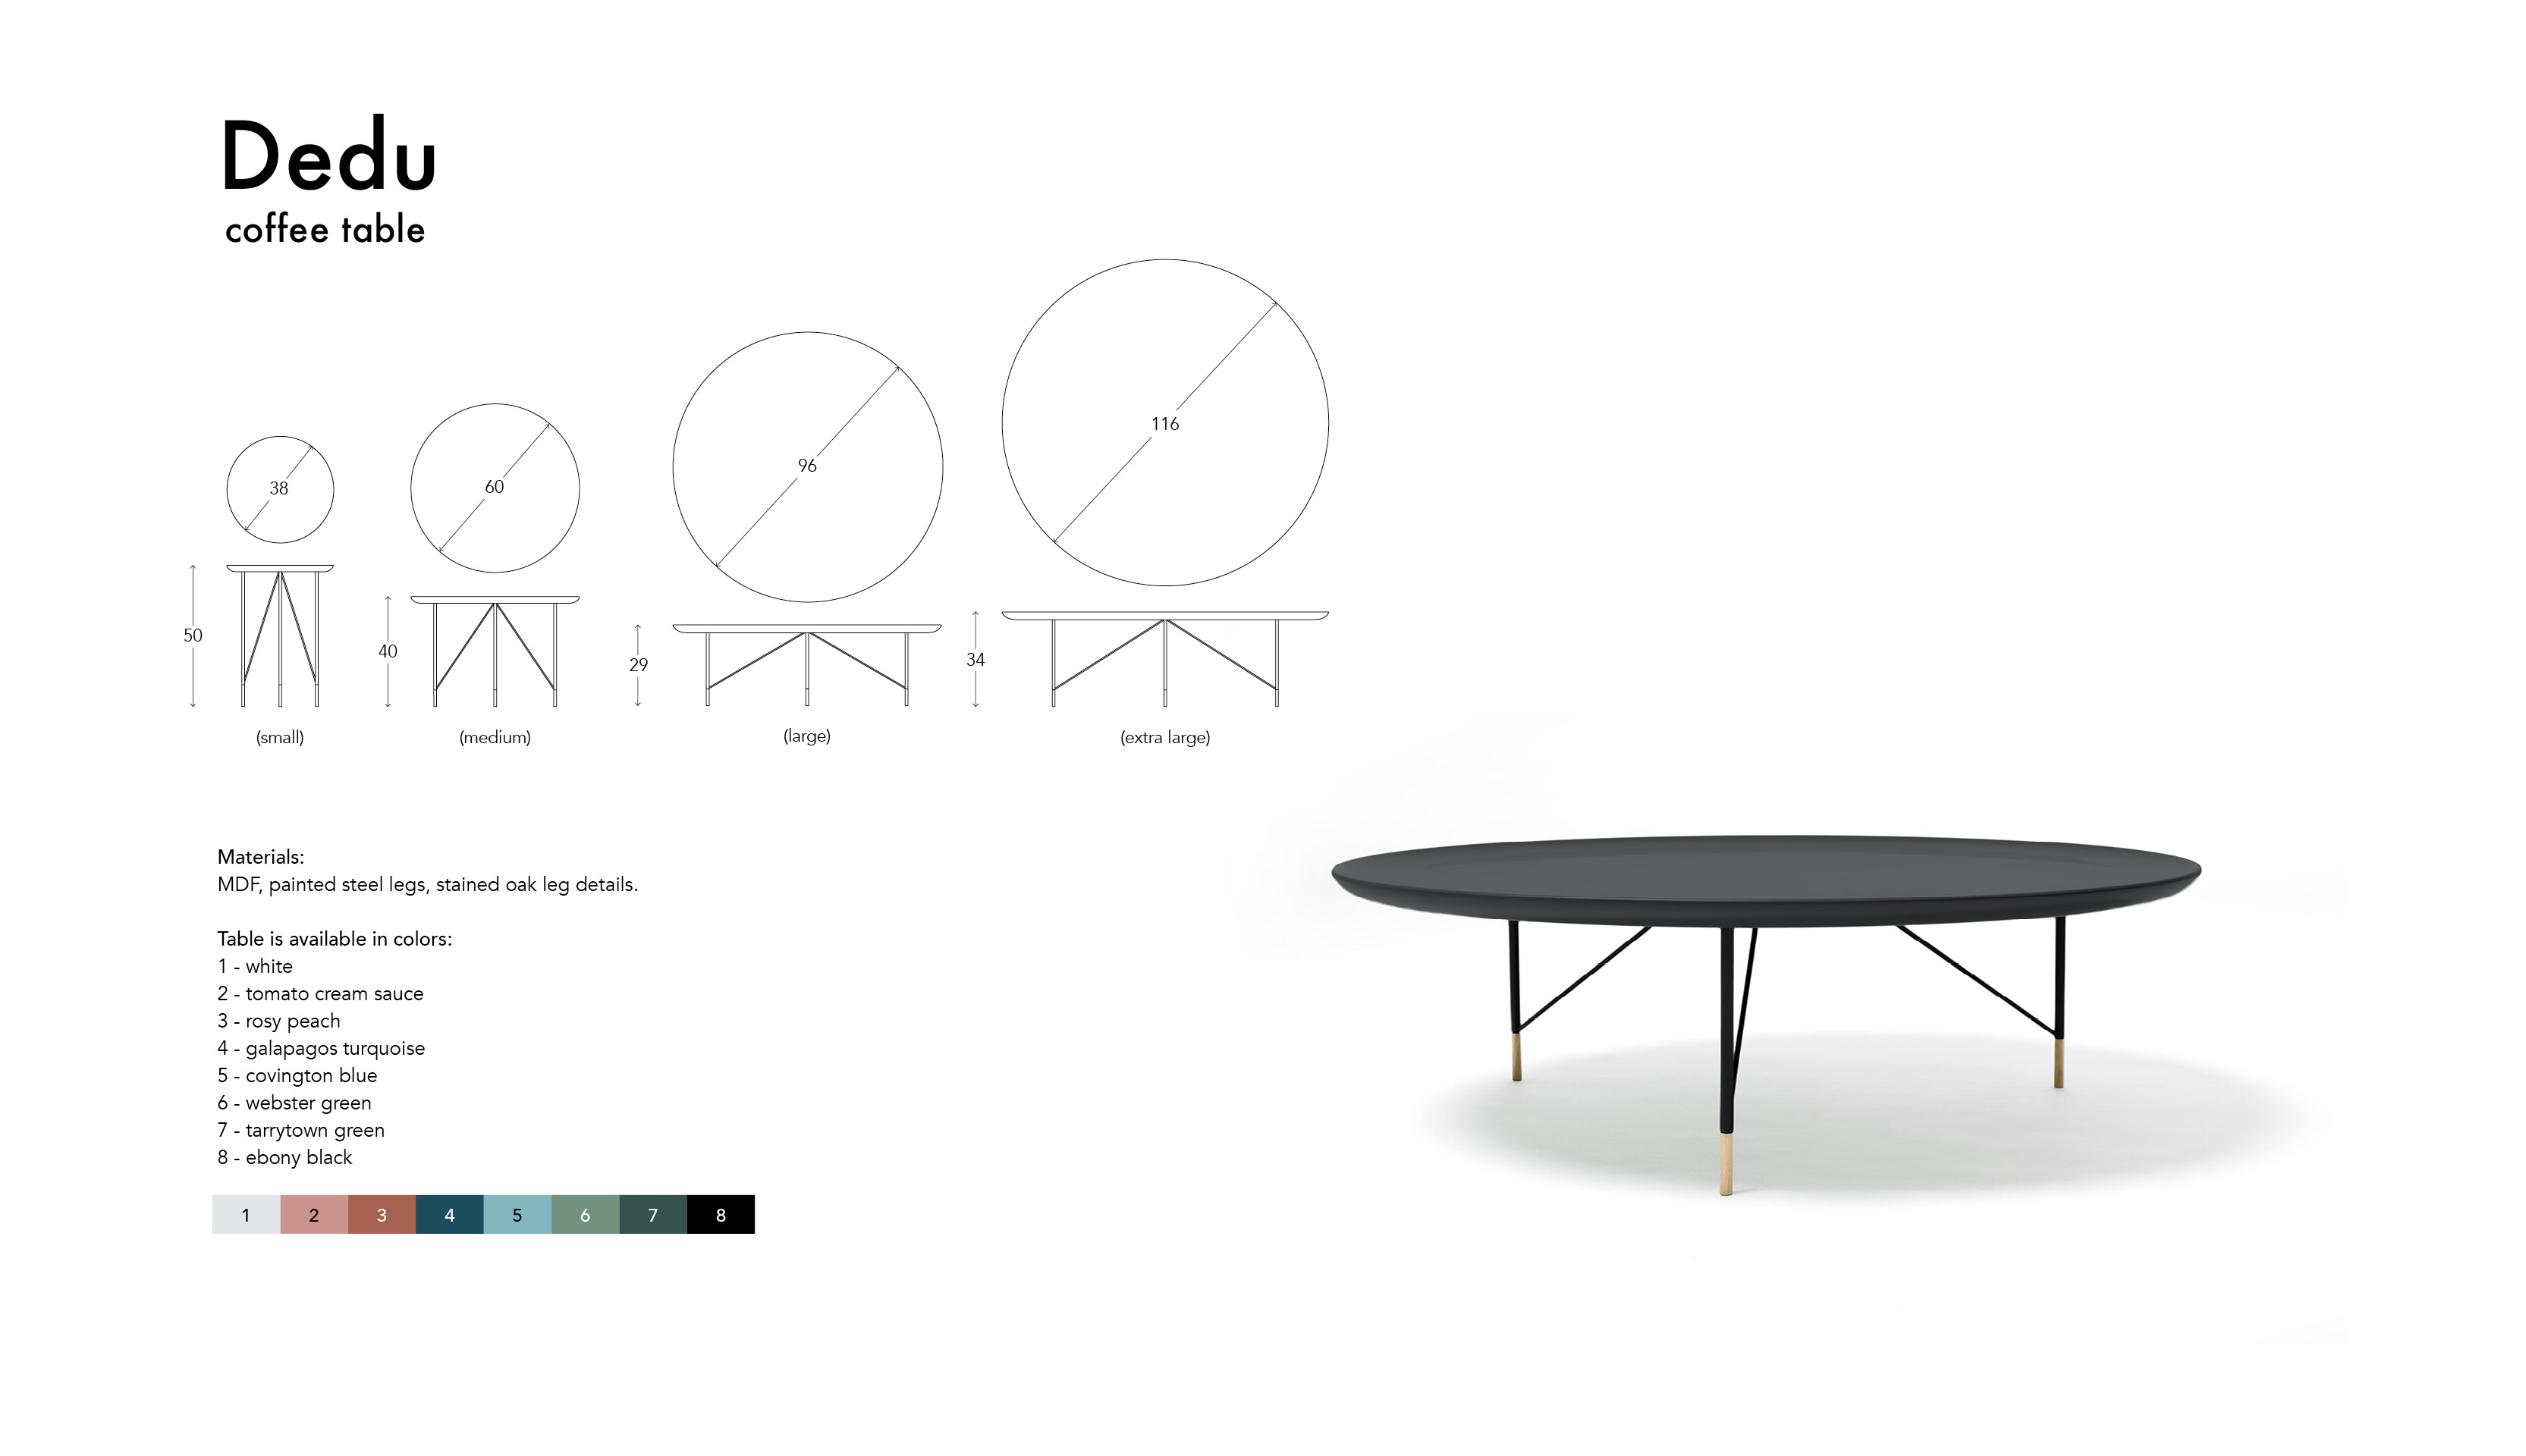 Jok Table.Dedu Coffee Table Jotjot